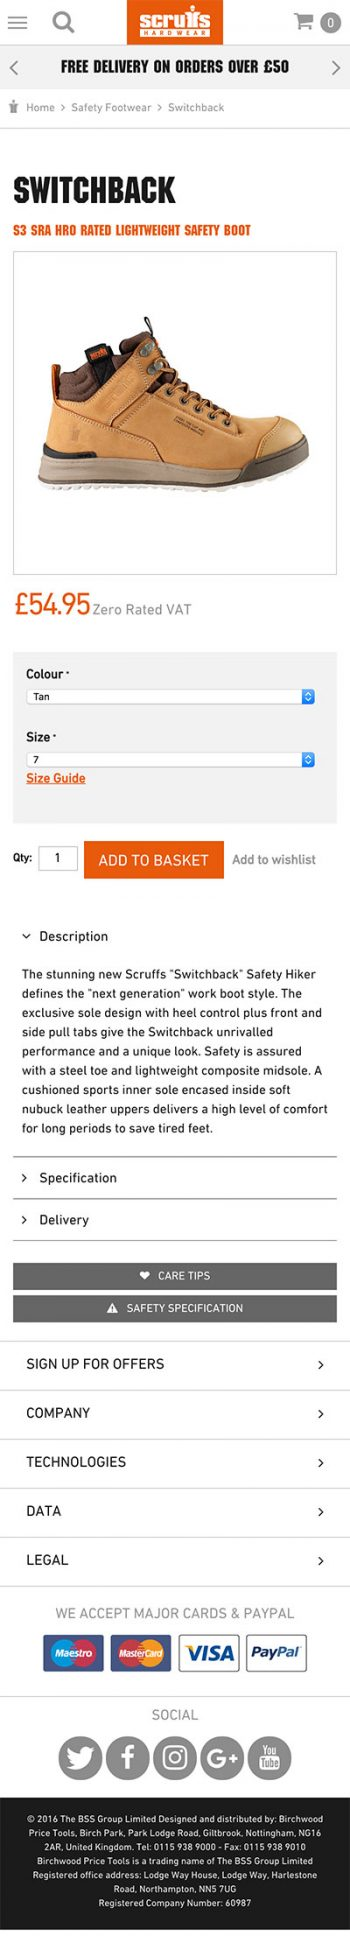 Scruffs WorkWear | Responsive Web Design | iWeb